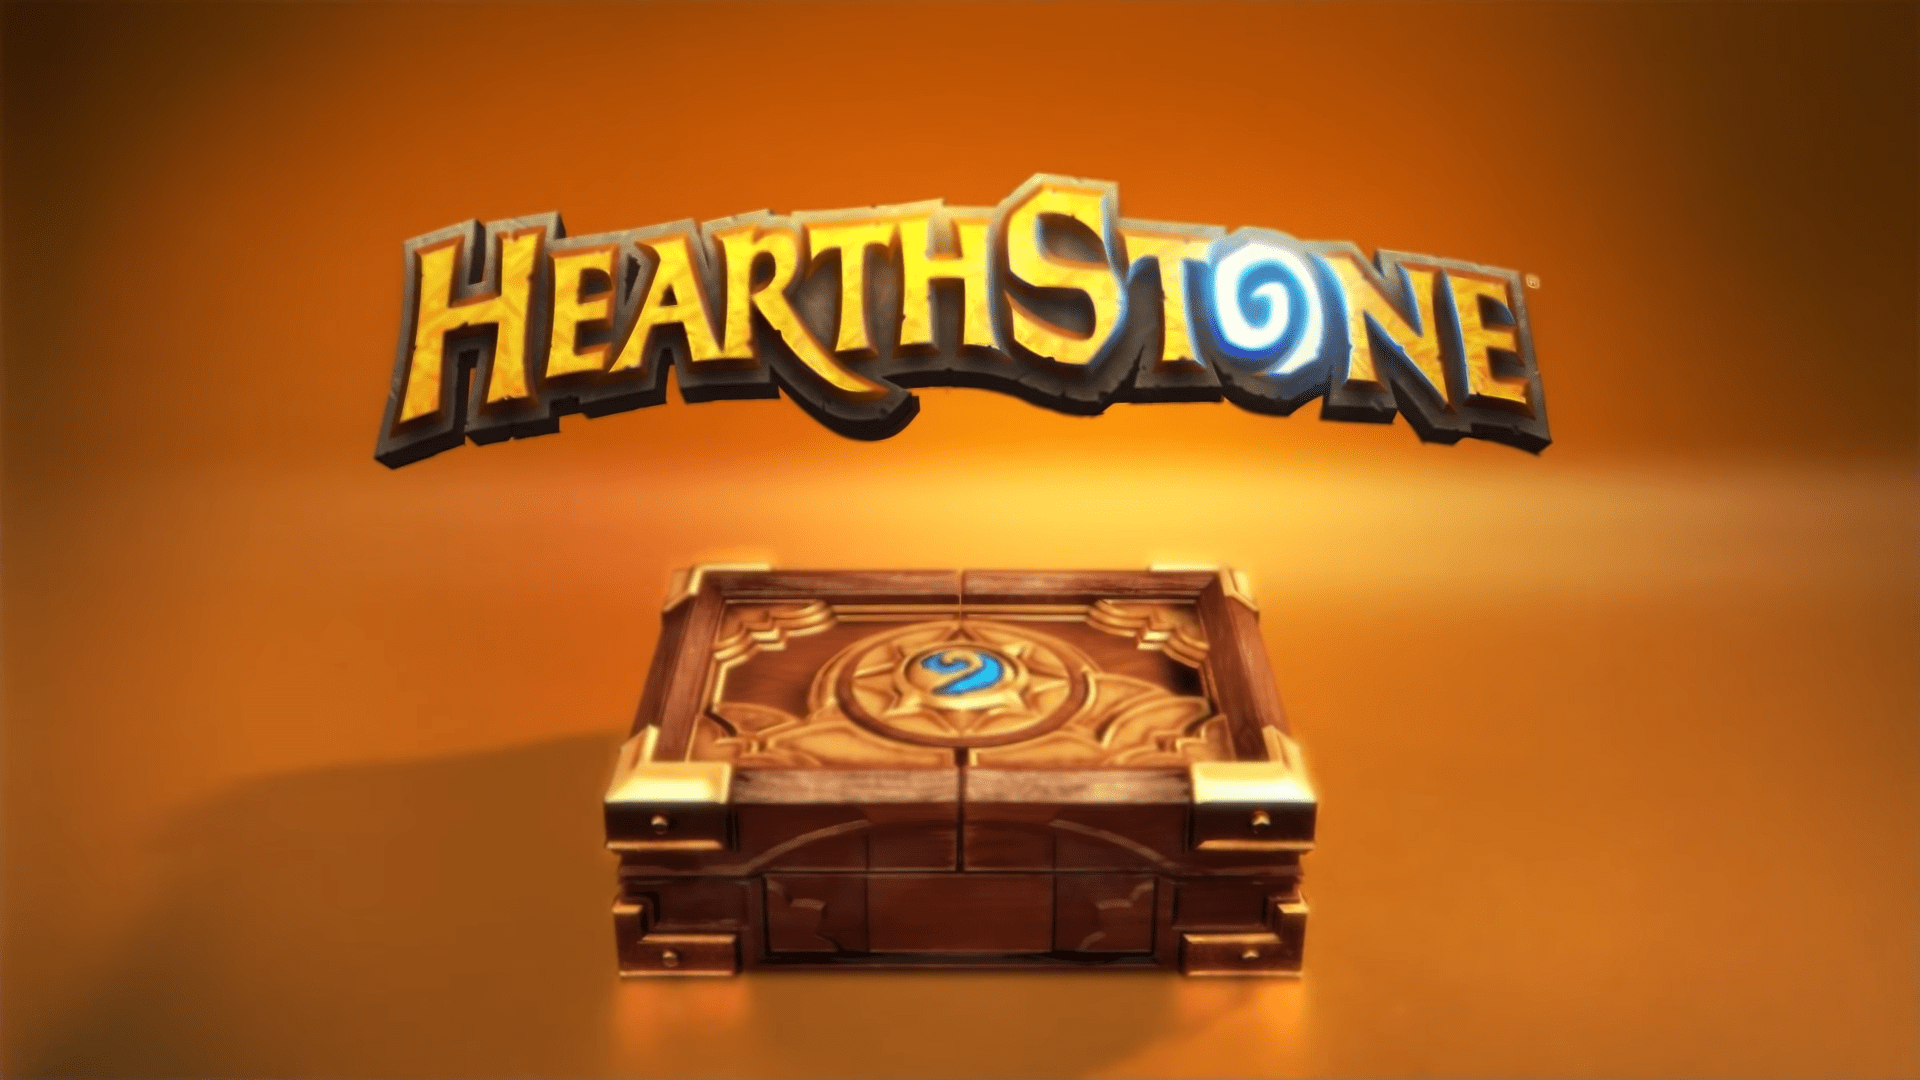 Hearthstone Battlegrounds Lag Problems Get Even Worse, Even After Blizzard Announced They'd Fixed The Issues